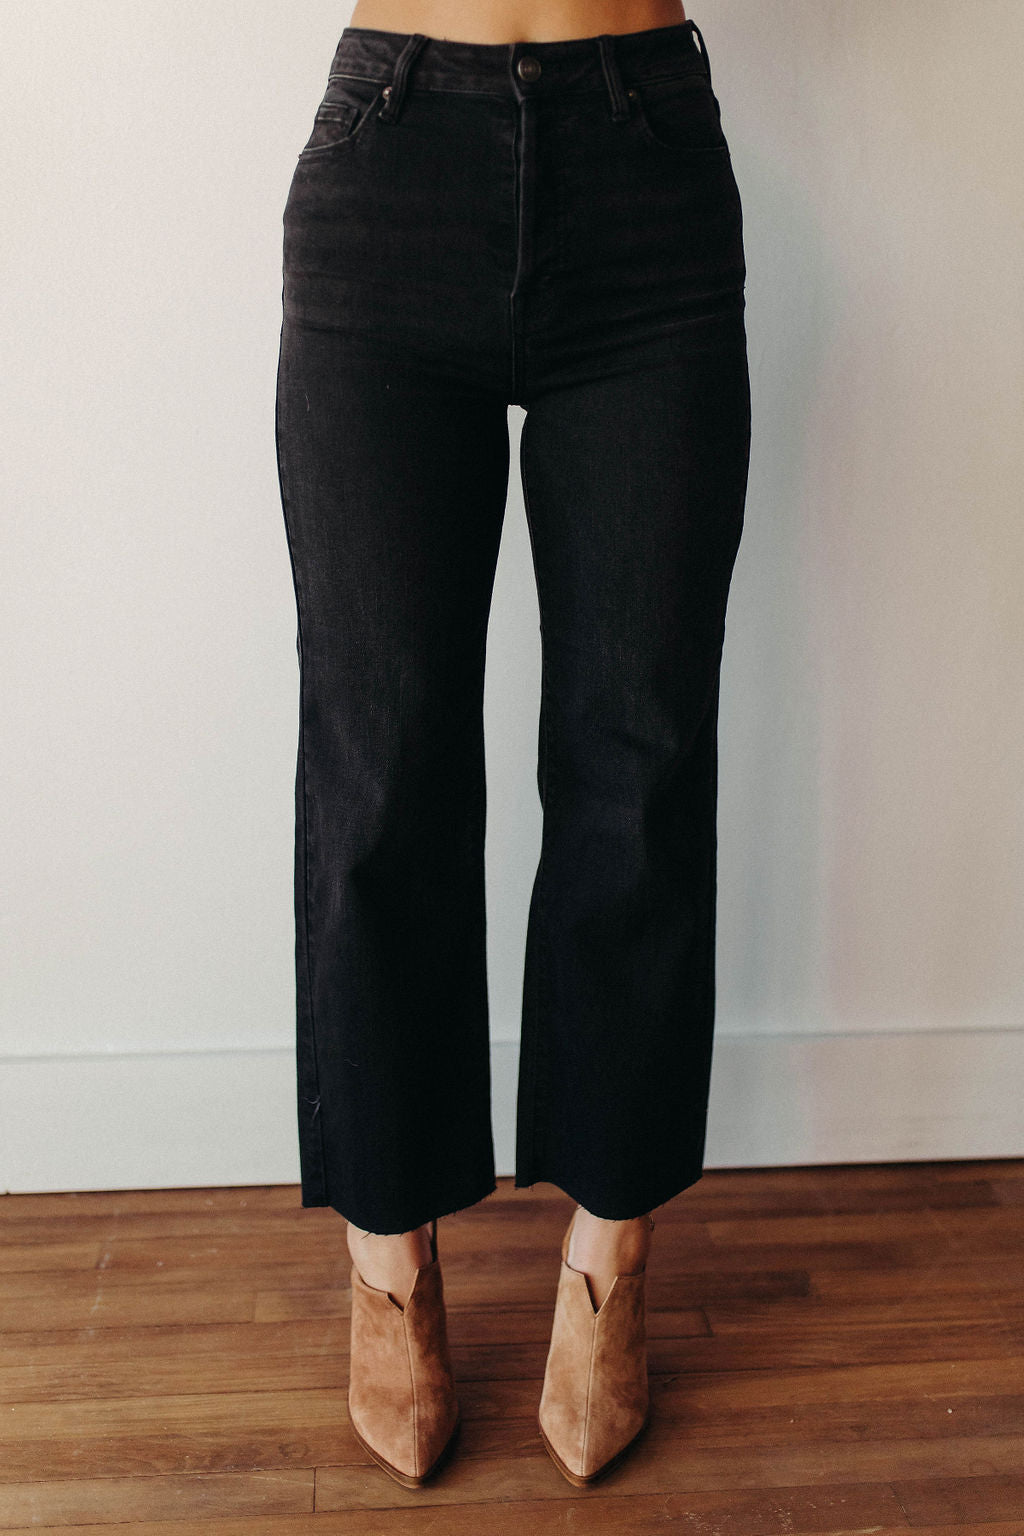 HIDDEN JEANS TRACEY | WASHED BLACK HIGH RISE JEANS